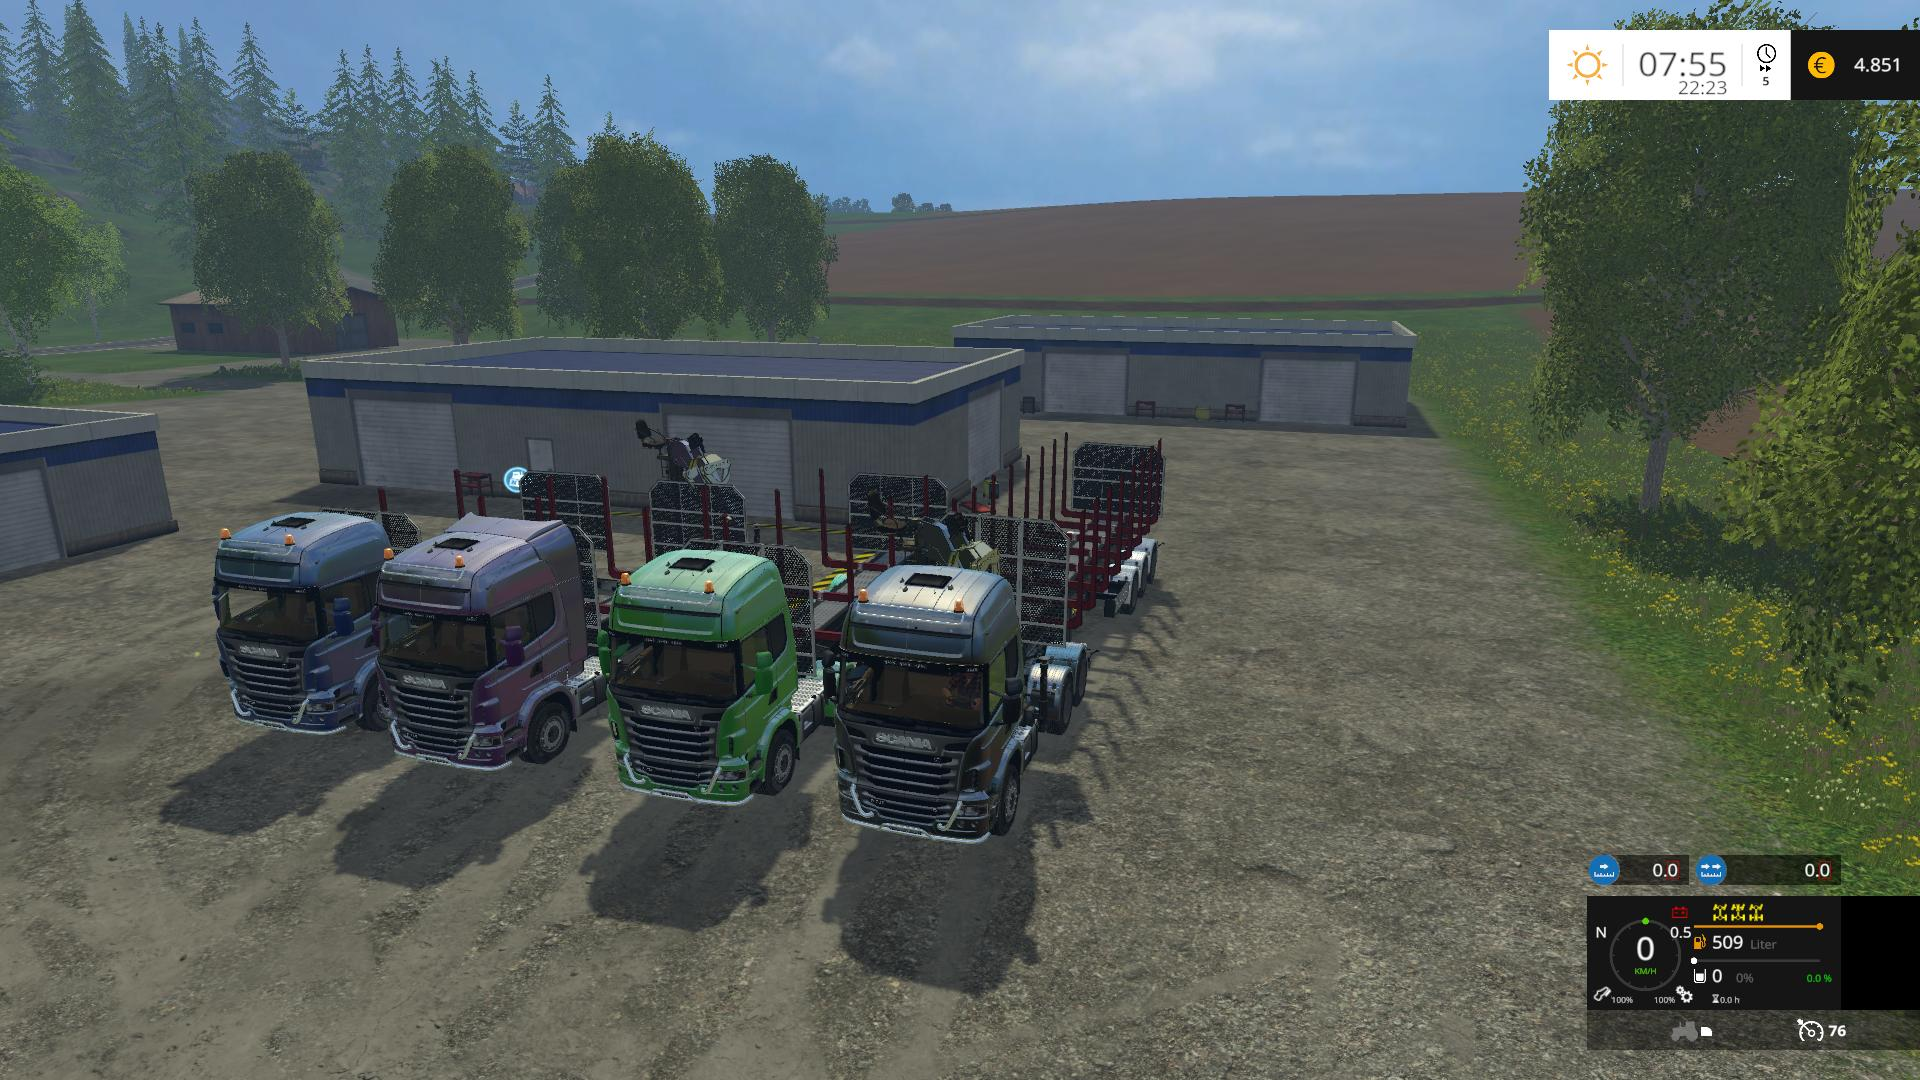 SCANIA 730 FOREST MegaPACK v1 0 - Farming simulator